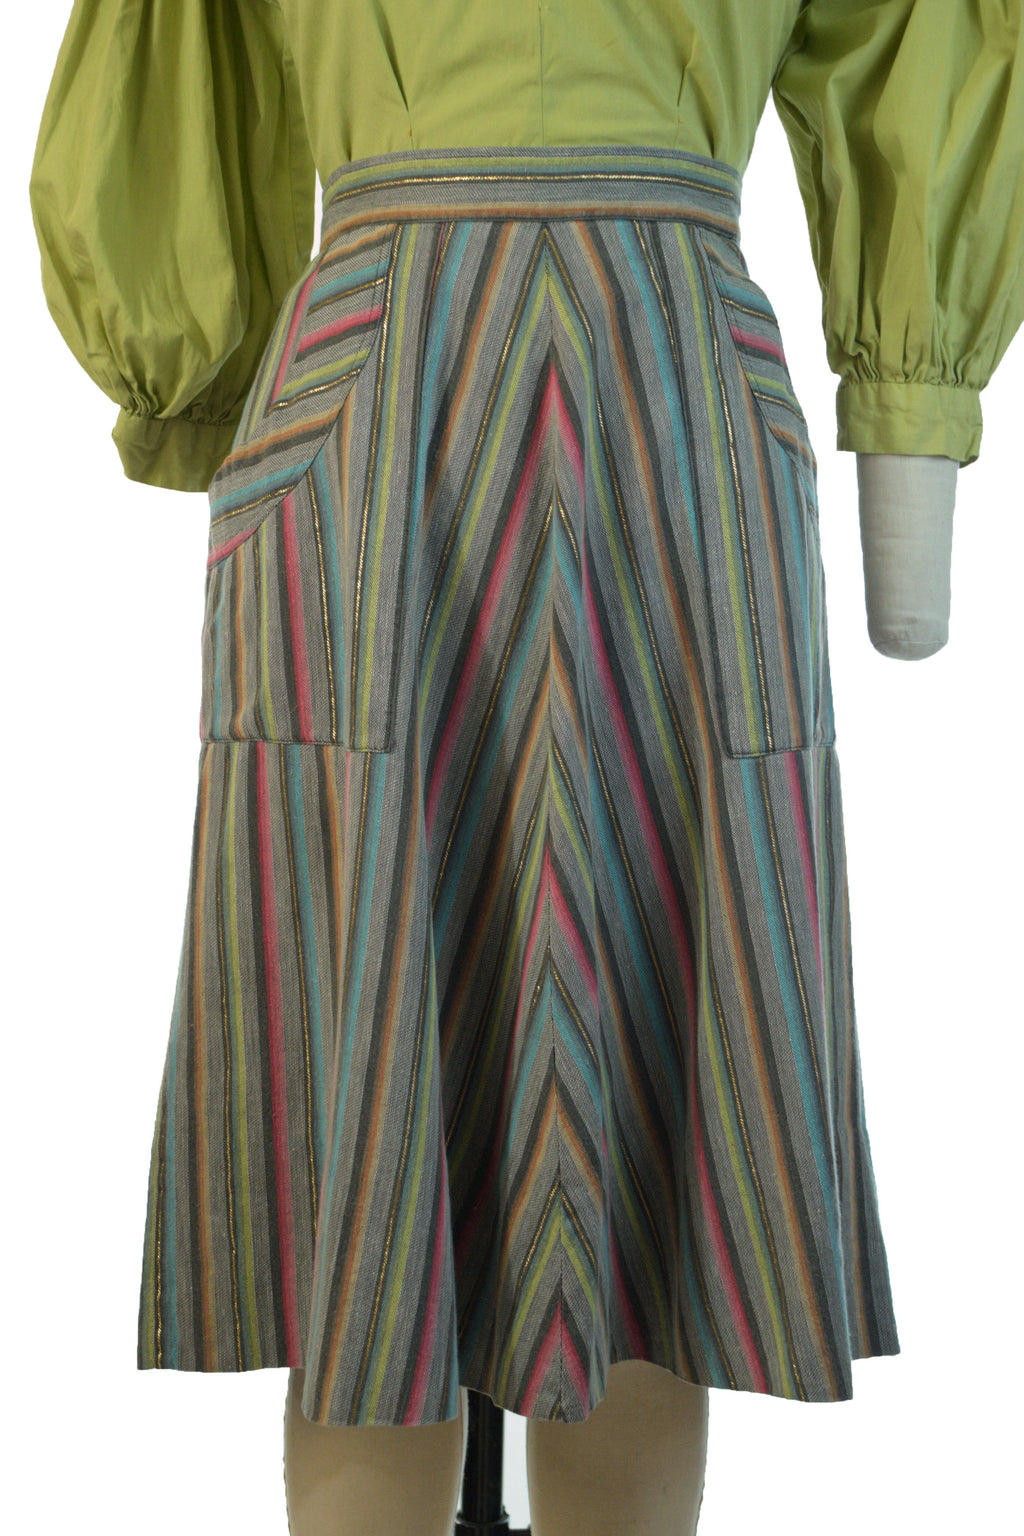 Cute 1950s or 60s Skirt in Sturdy Cotton Twill with Rainbow Chevron Stripes